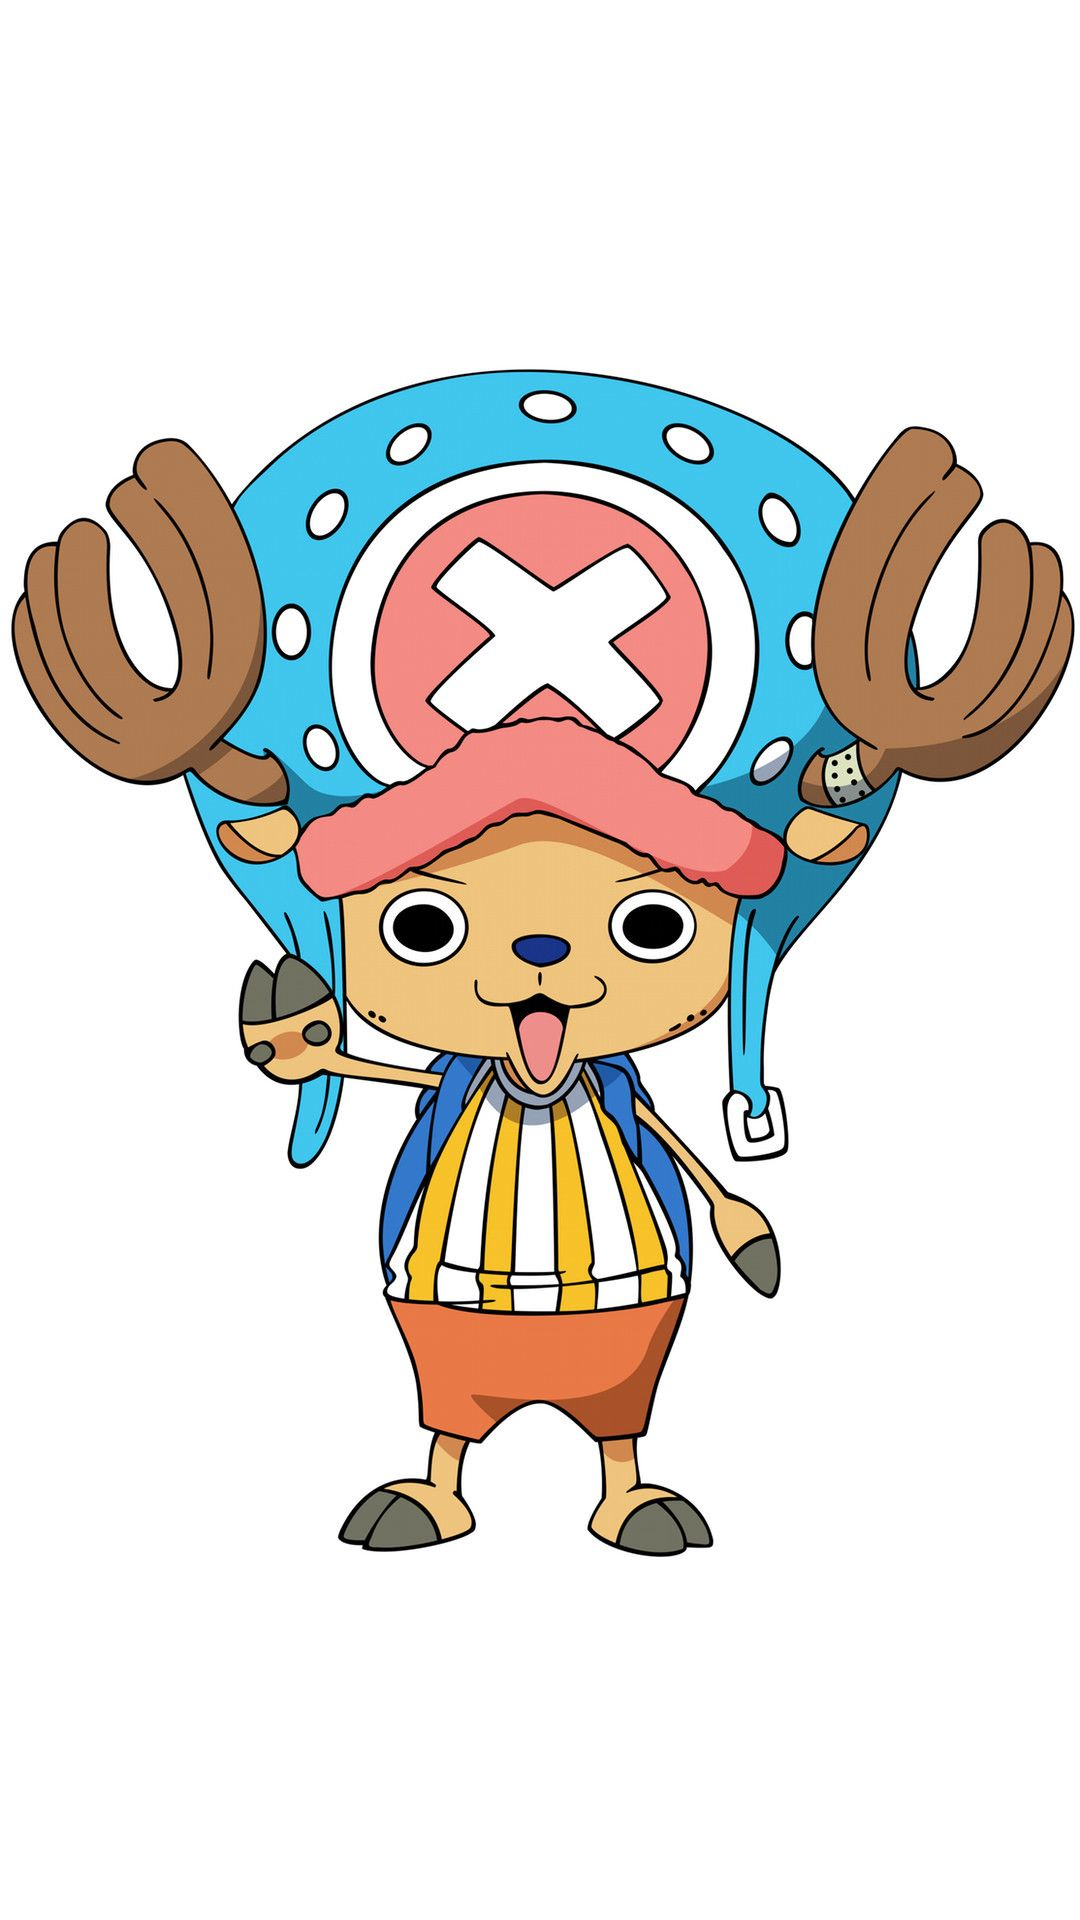 Papel De Parede De Um Pedaco Chopper Full Hd No Papel De Parede 1080p Hd One Piece Wallpaper Iphone One Piece Chopper One Piece Drawing